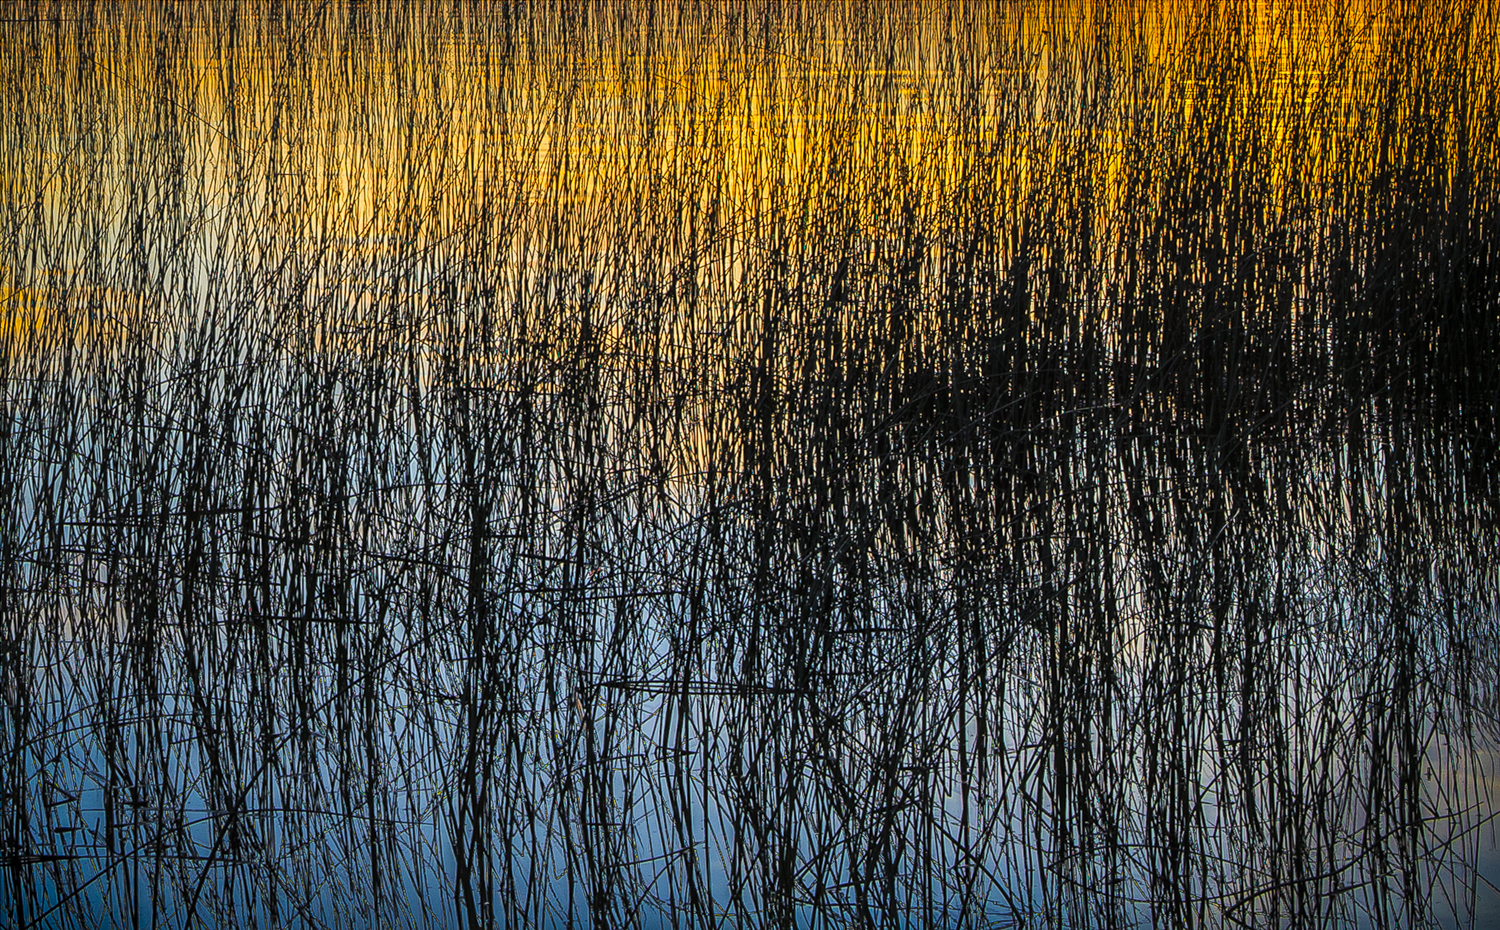 Mixed media ads a more organic feel to this abstract of reeds at sunset. Photo and acrylic paint